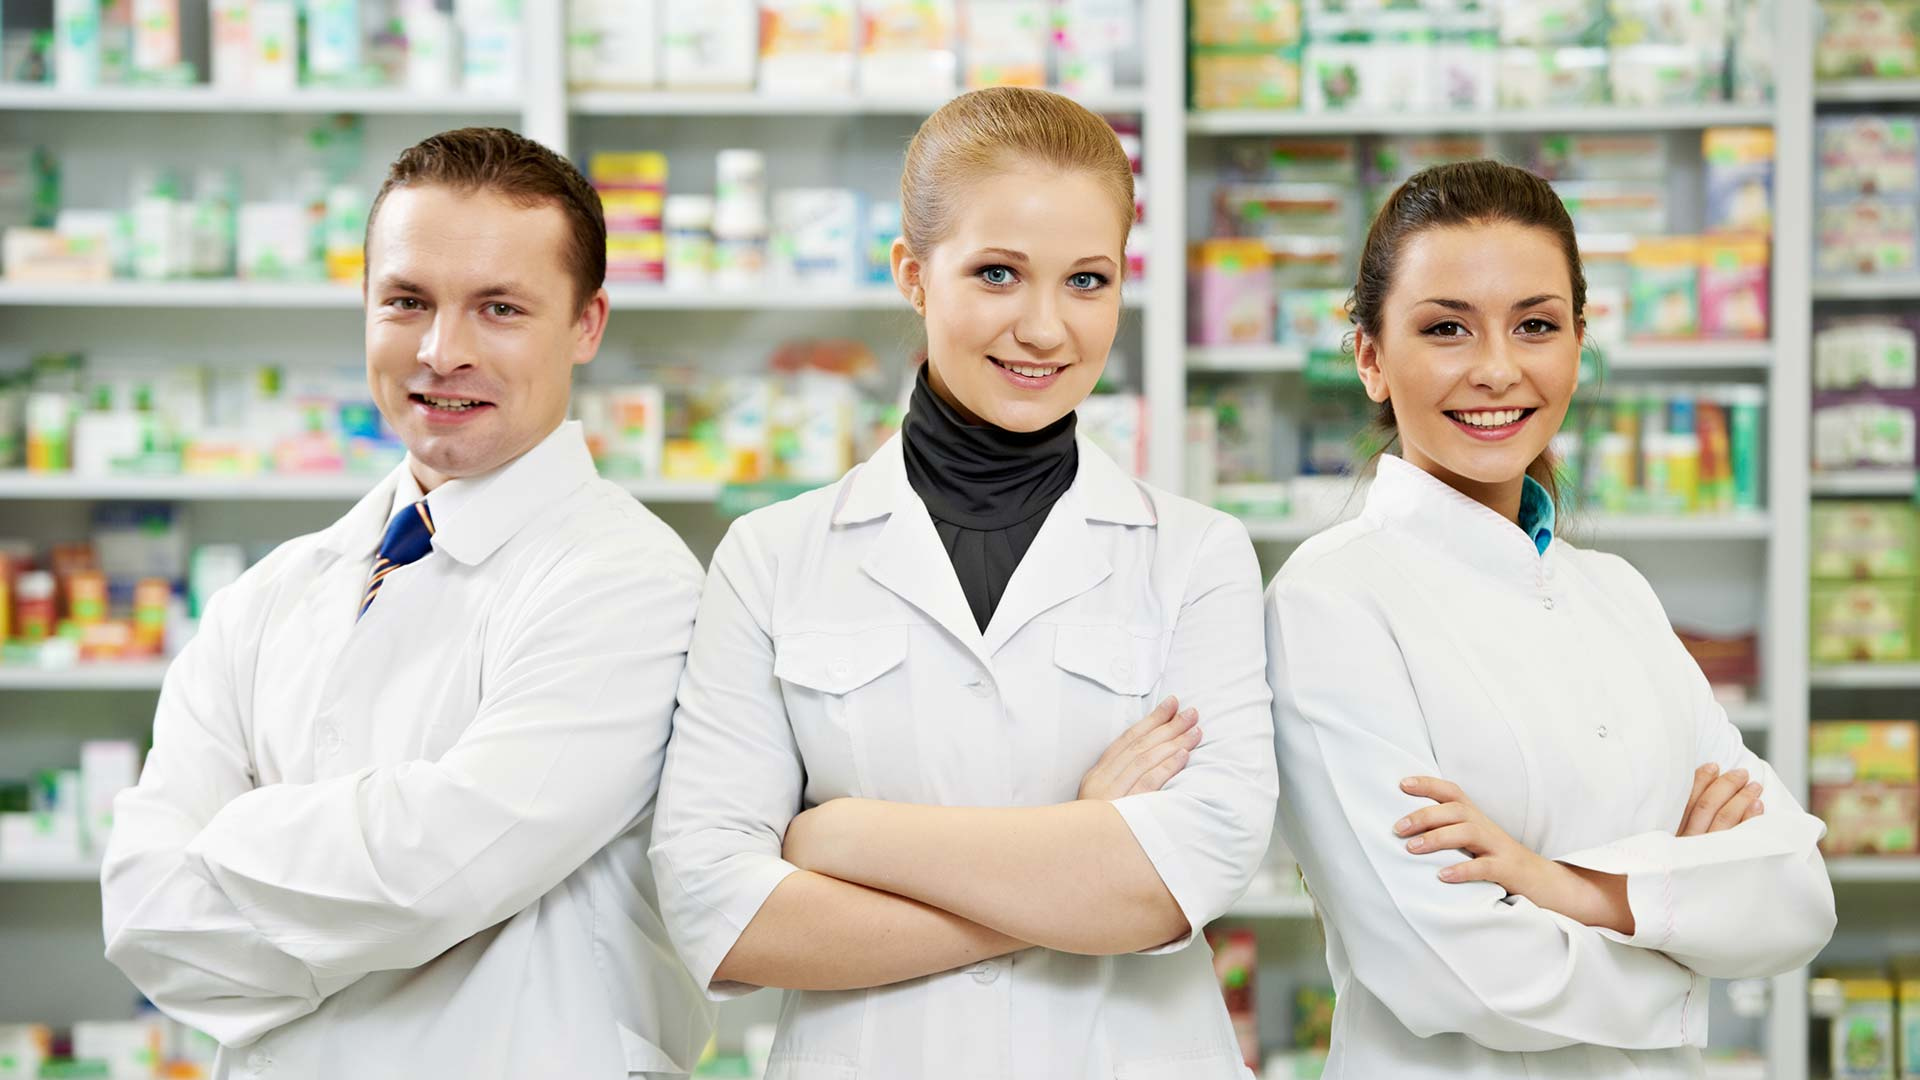 pharmacy professionals working